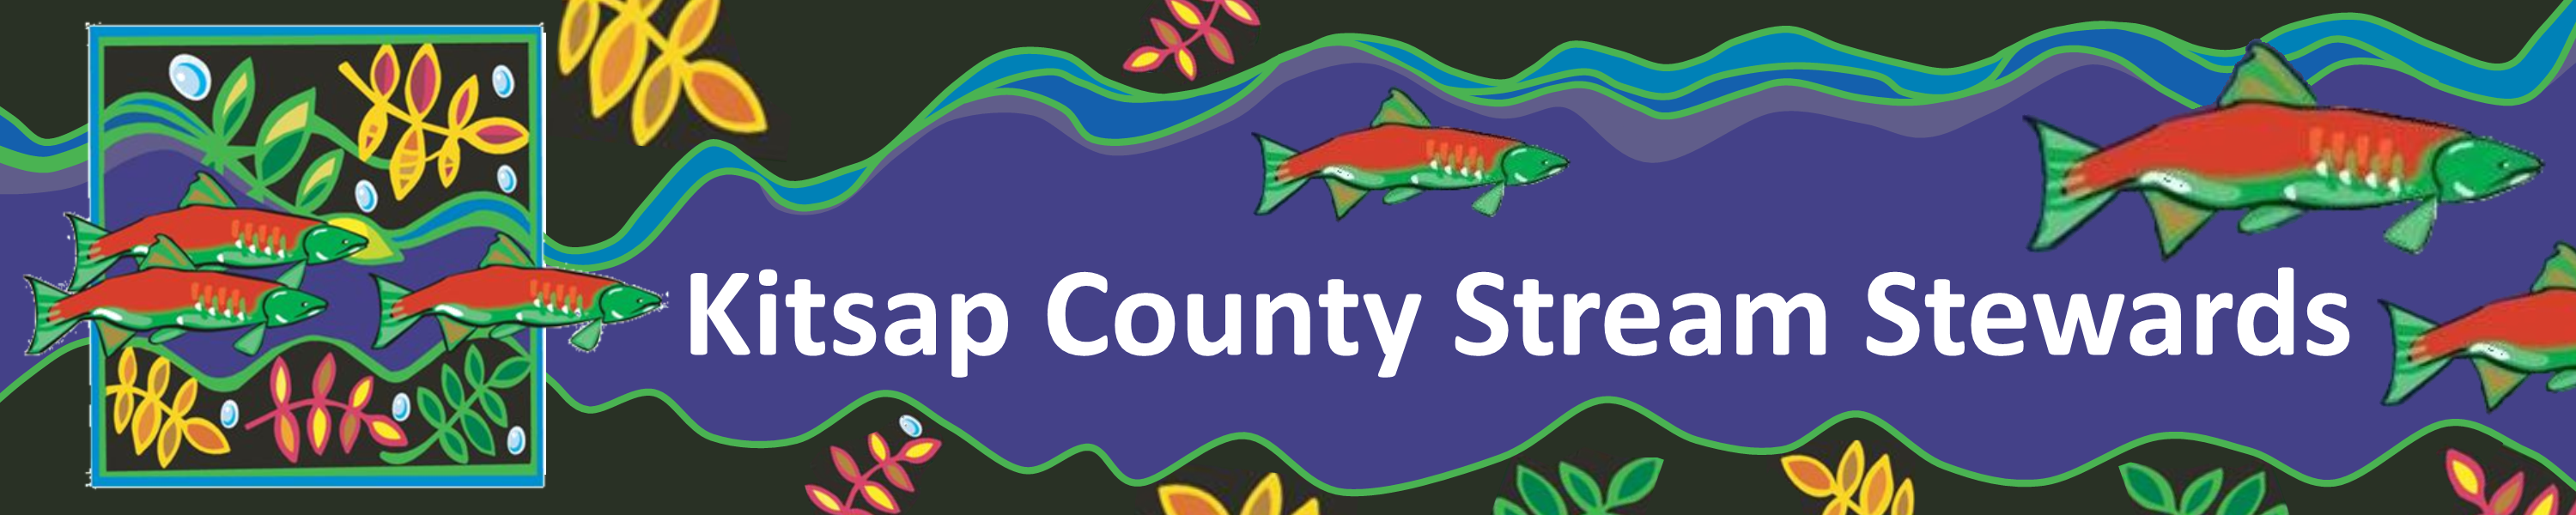 Kitsap County Stream Stewards